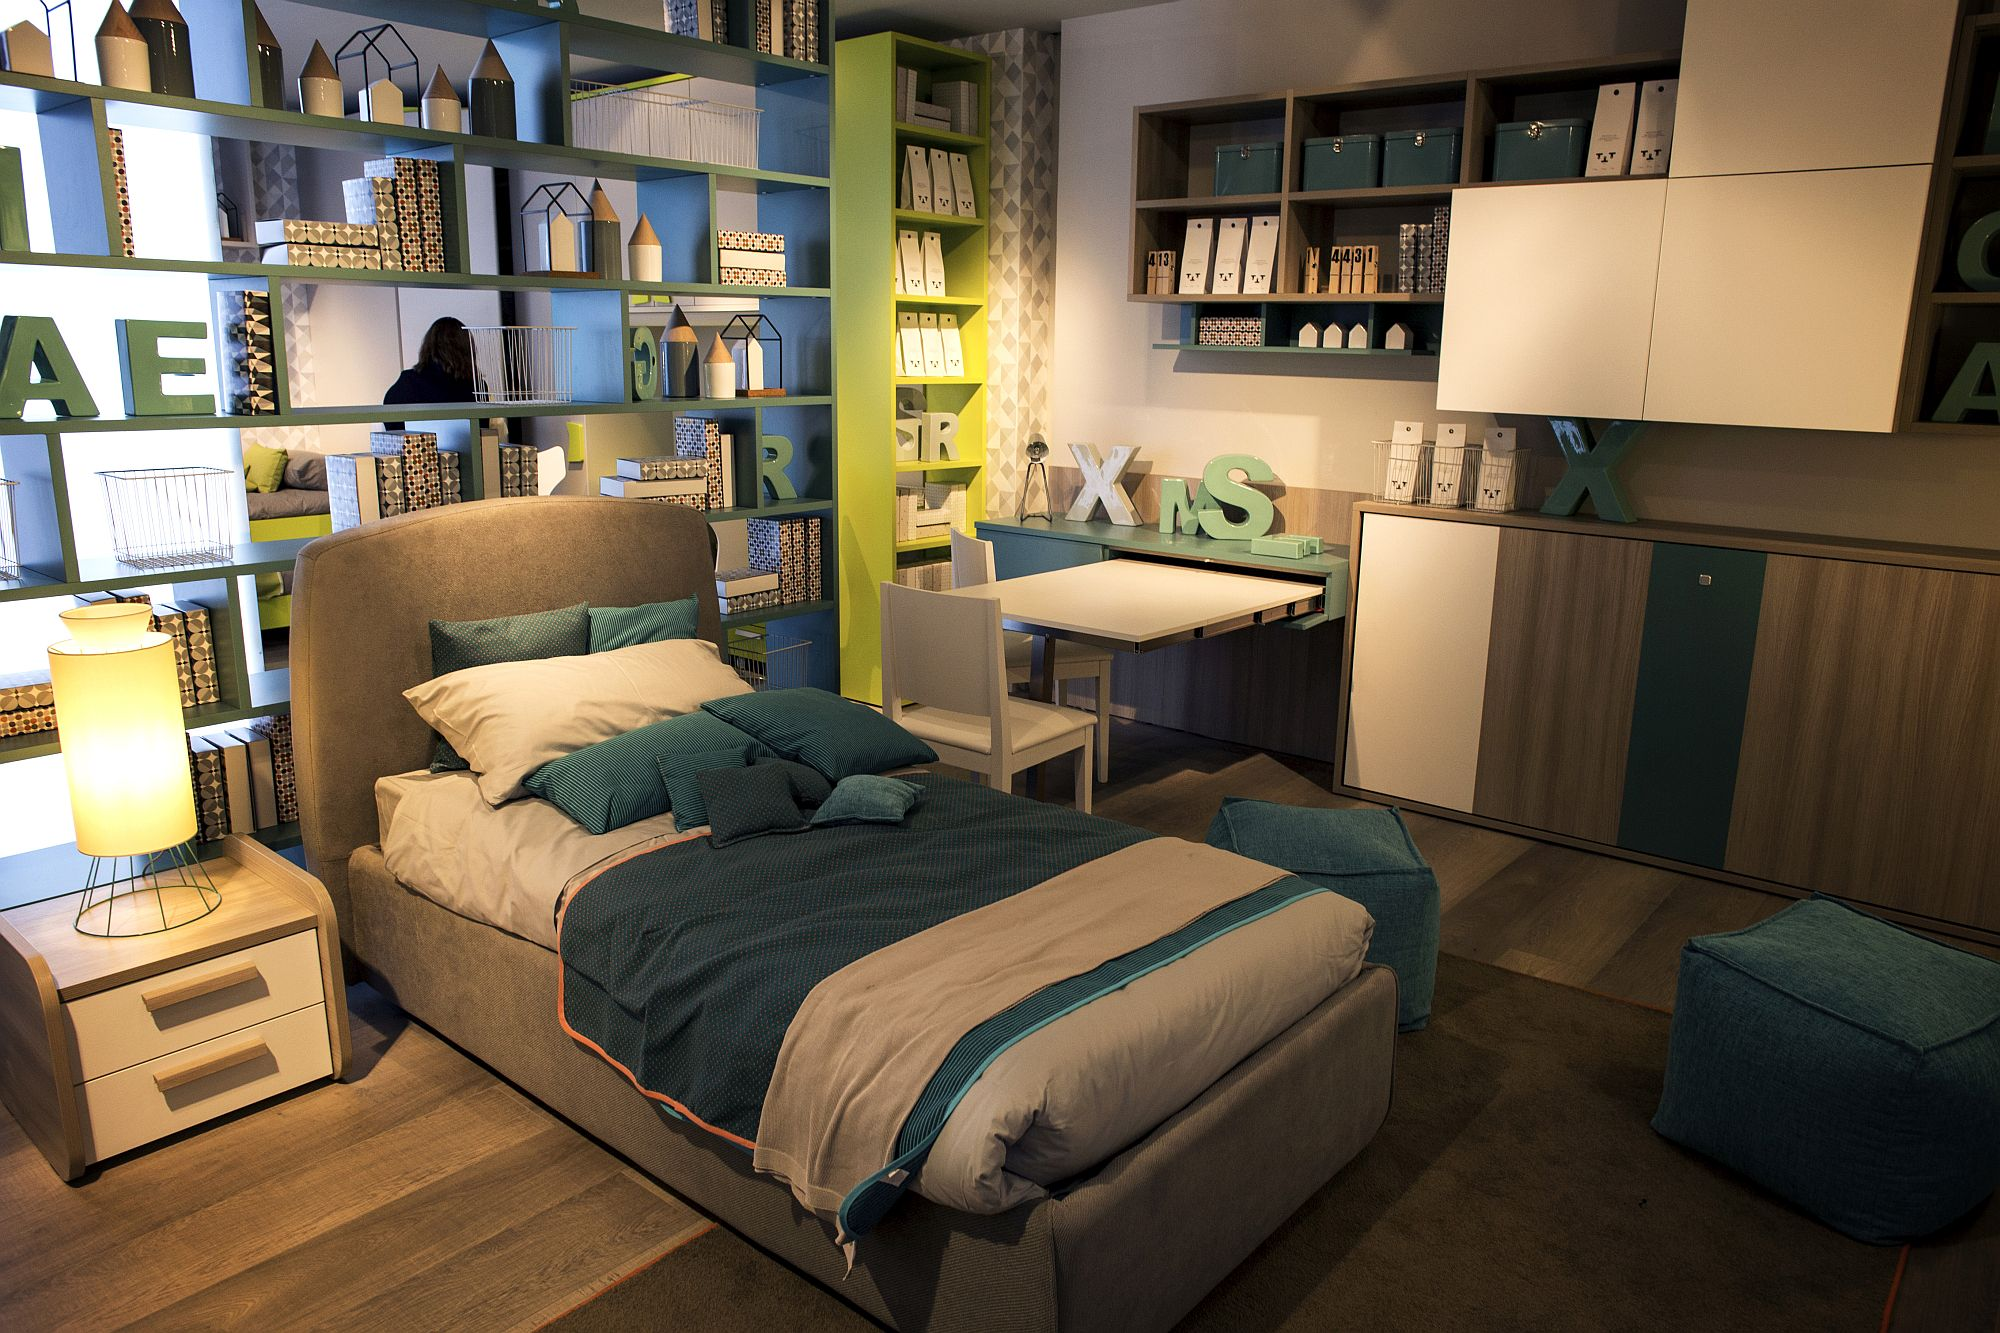 Wall of open shelves helps delineate space in style